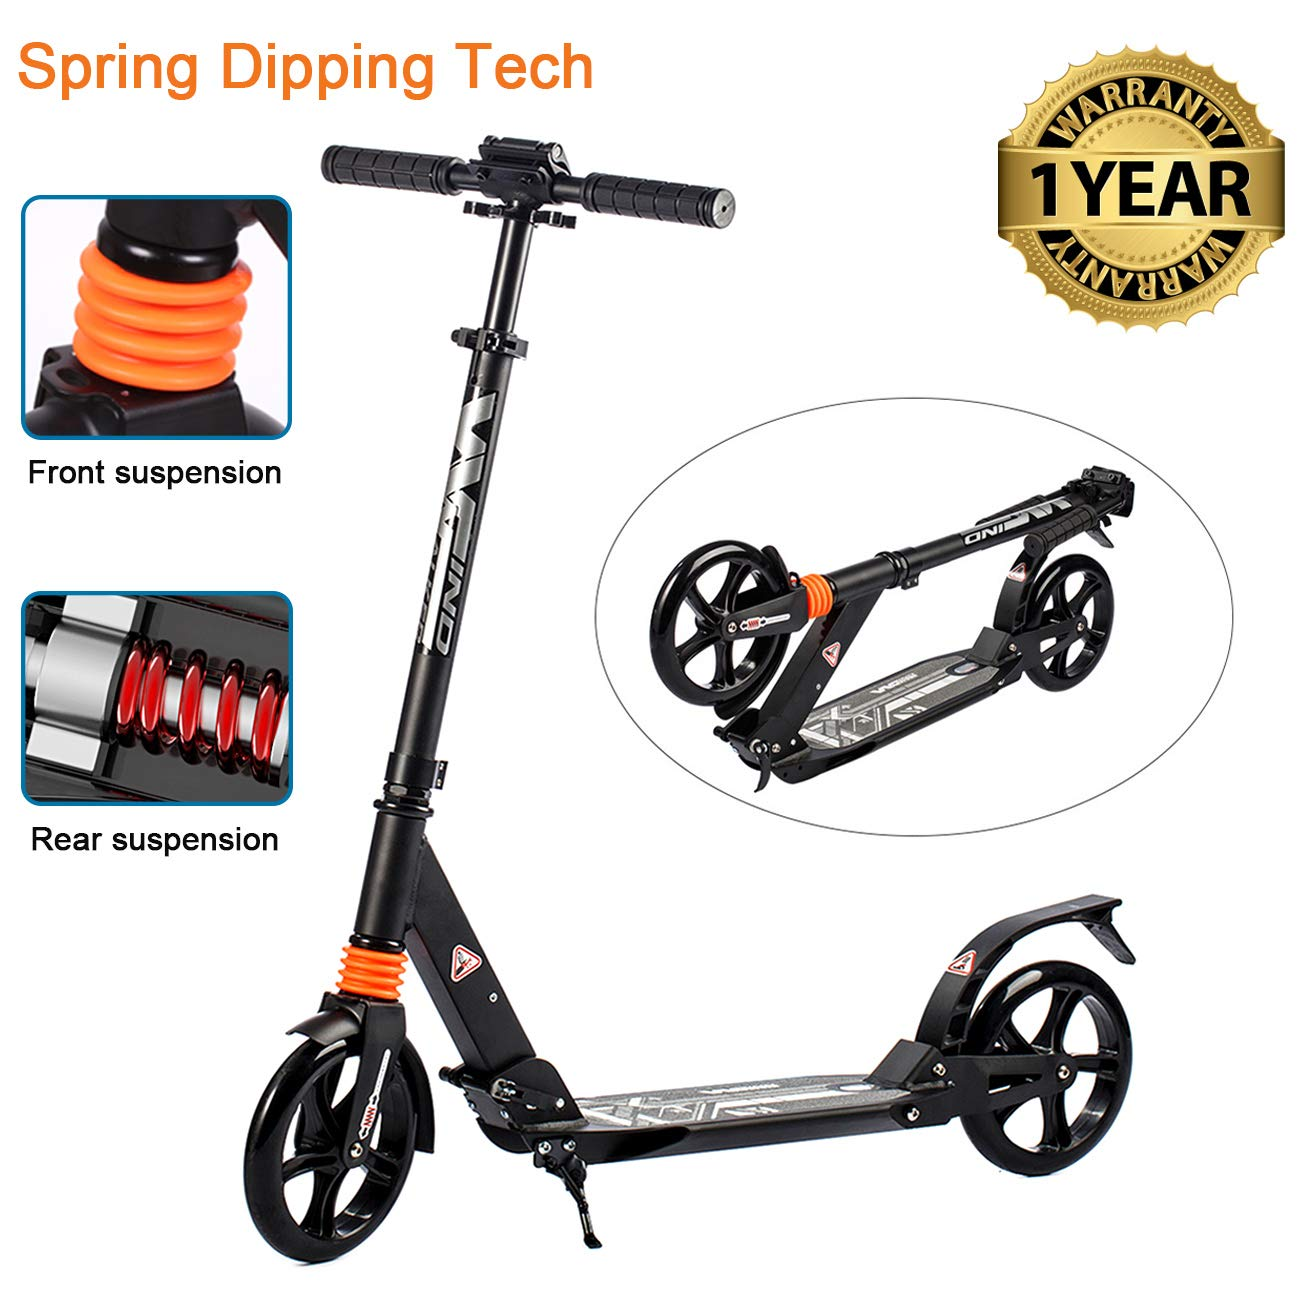 WINDWALKER Scooter for Adults Teens 【Dual Suspension】【Adjustable Foldable】【Big Wheels】【Rear Fender Brake】 Aluminium Alloy Commuter Scooter for Kids Age 12+ Smooth Fast 180lb Weight Limit by WINDWALKER